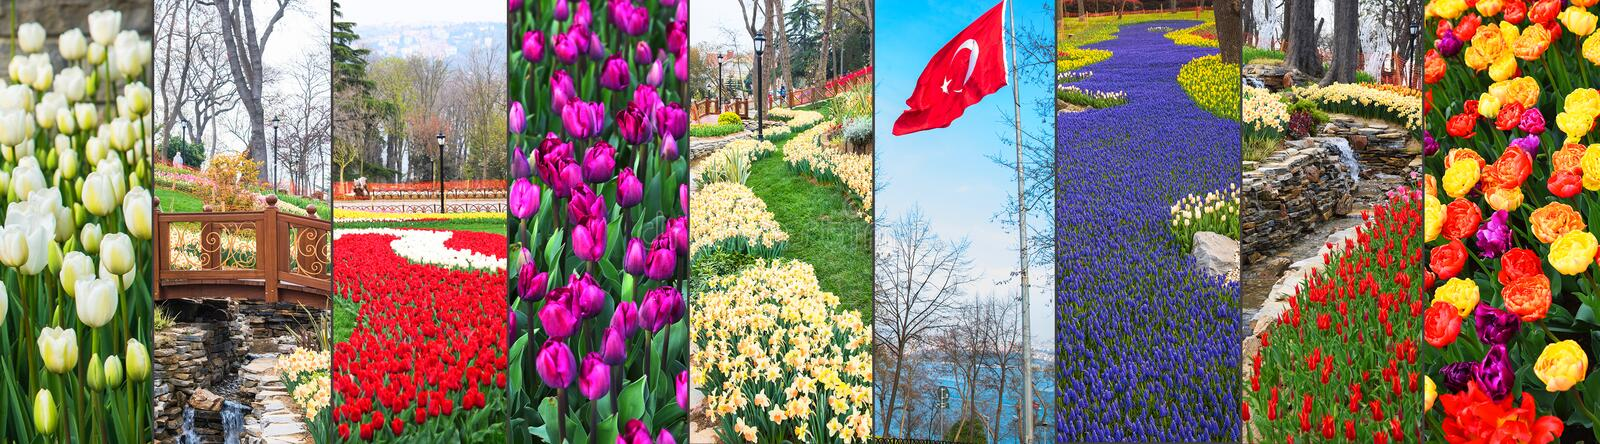 World famous Tulip Festival in Emirgan Park, Istanbul, Turkey. Flowering of tulips. Big collage royalty free stock image